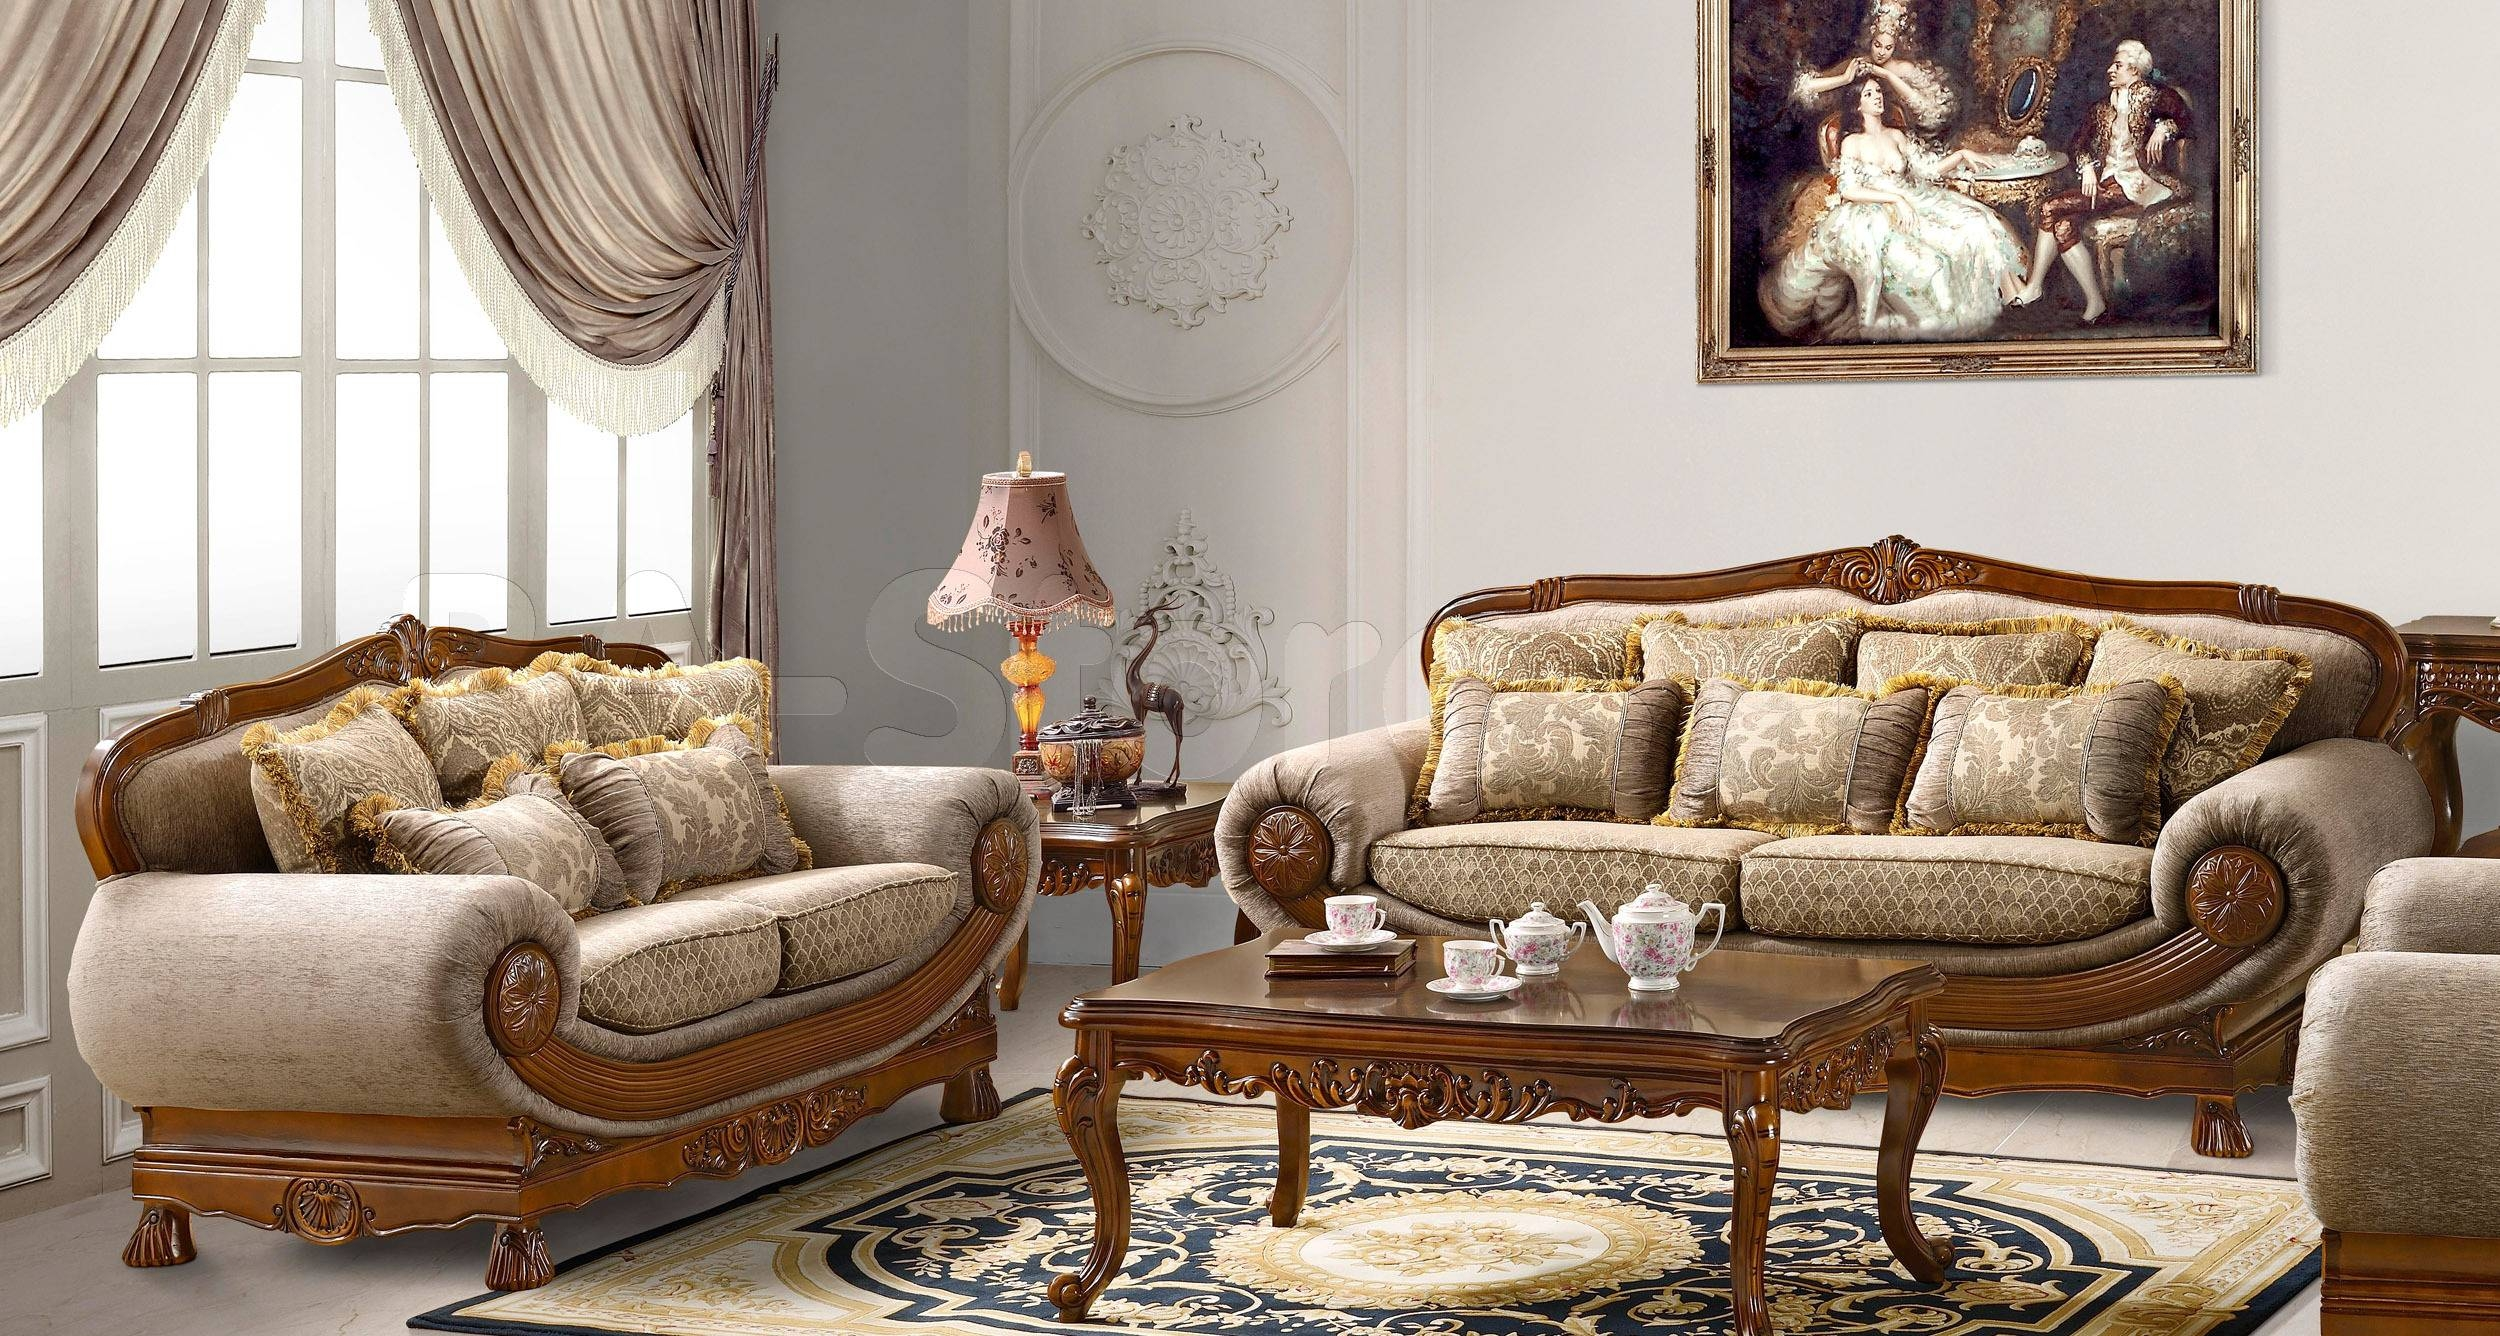 Brilliant Traditional Sofa Designs Picture Throughout Decor pertaining to Traditional Sofas And Chairs (Image 1 of 15)